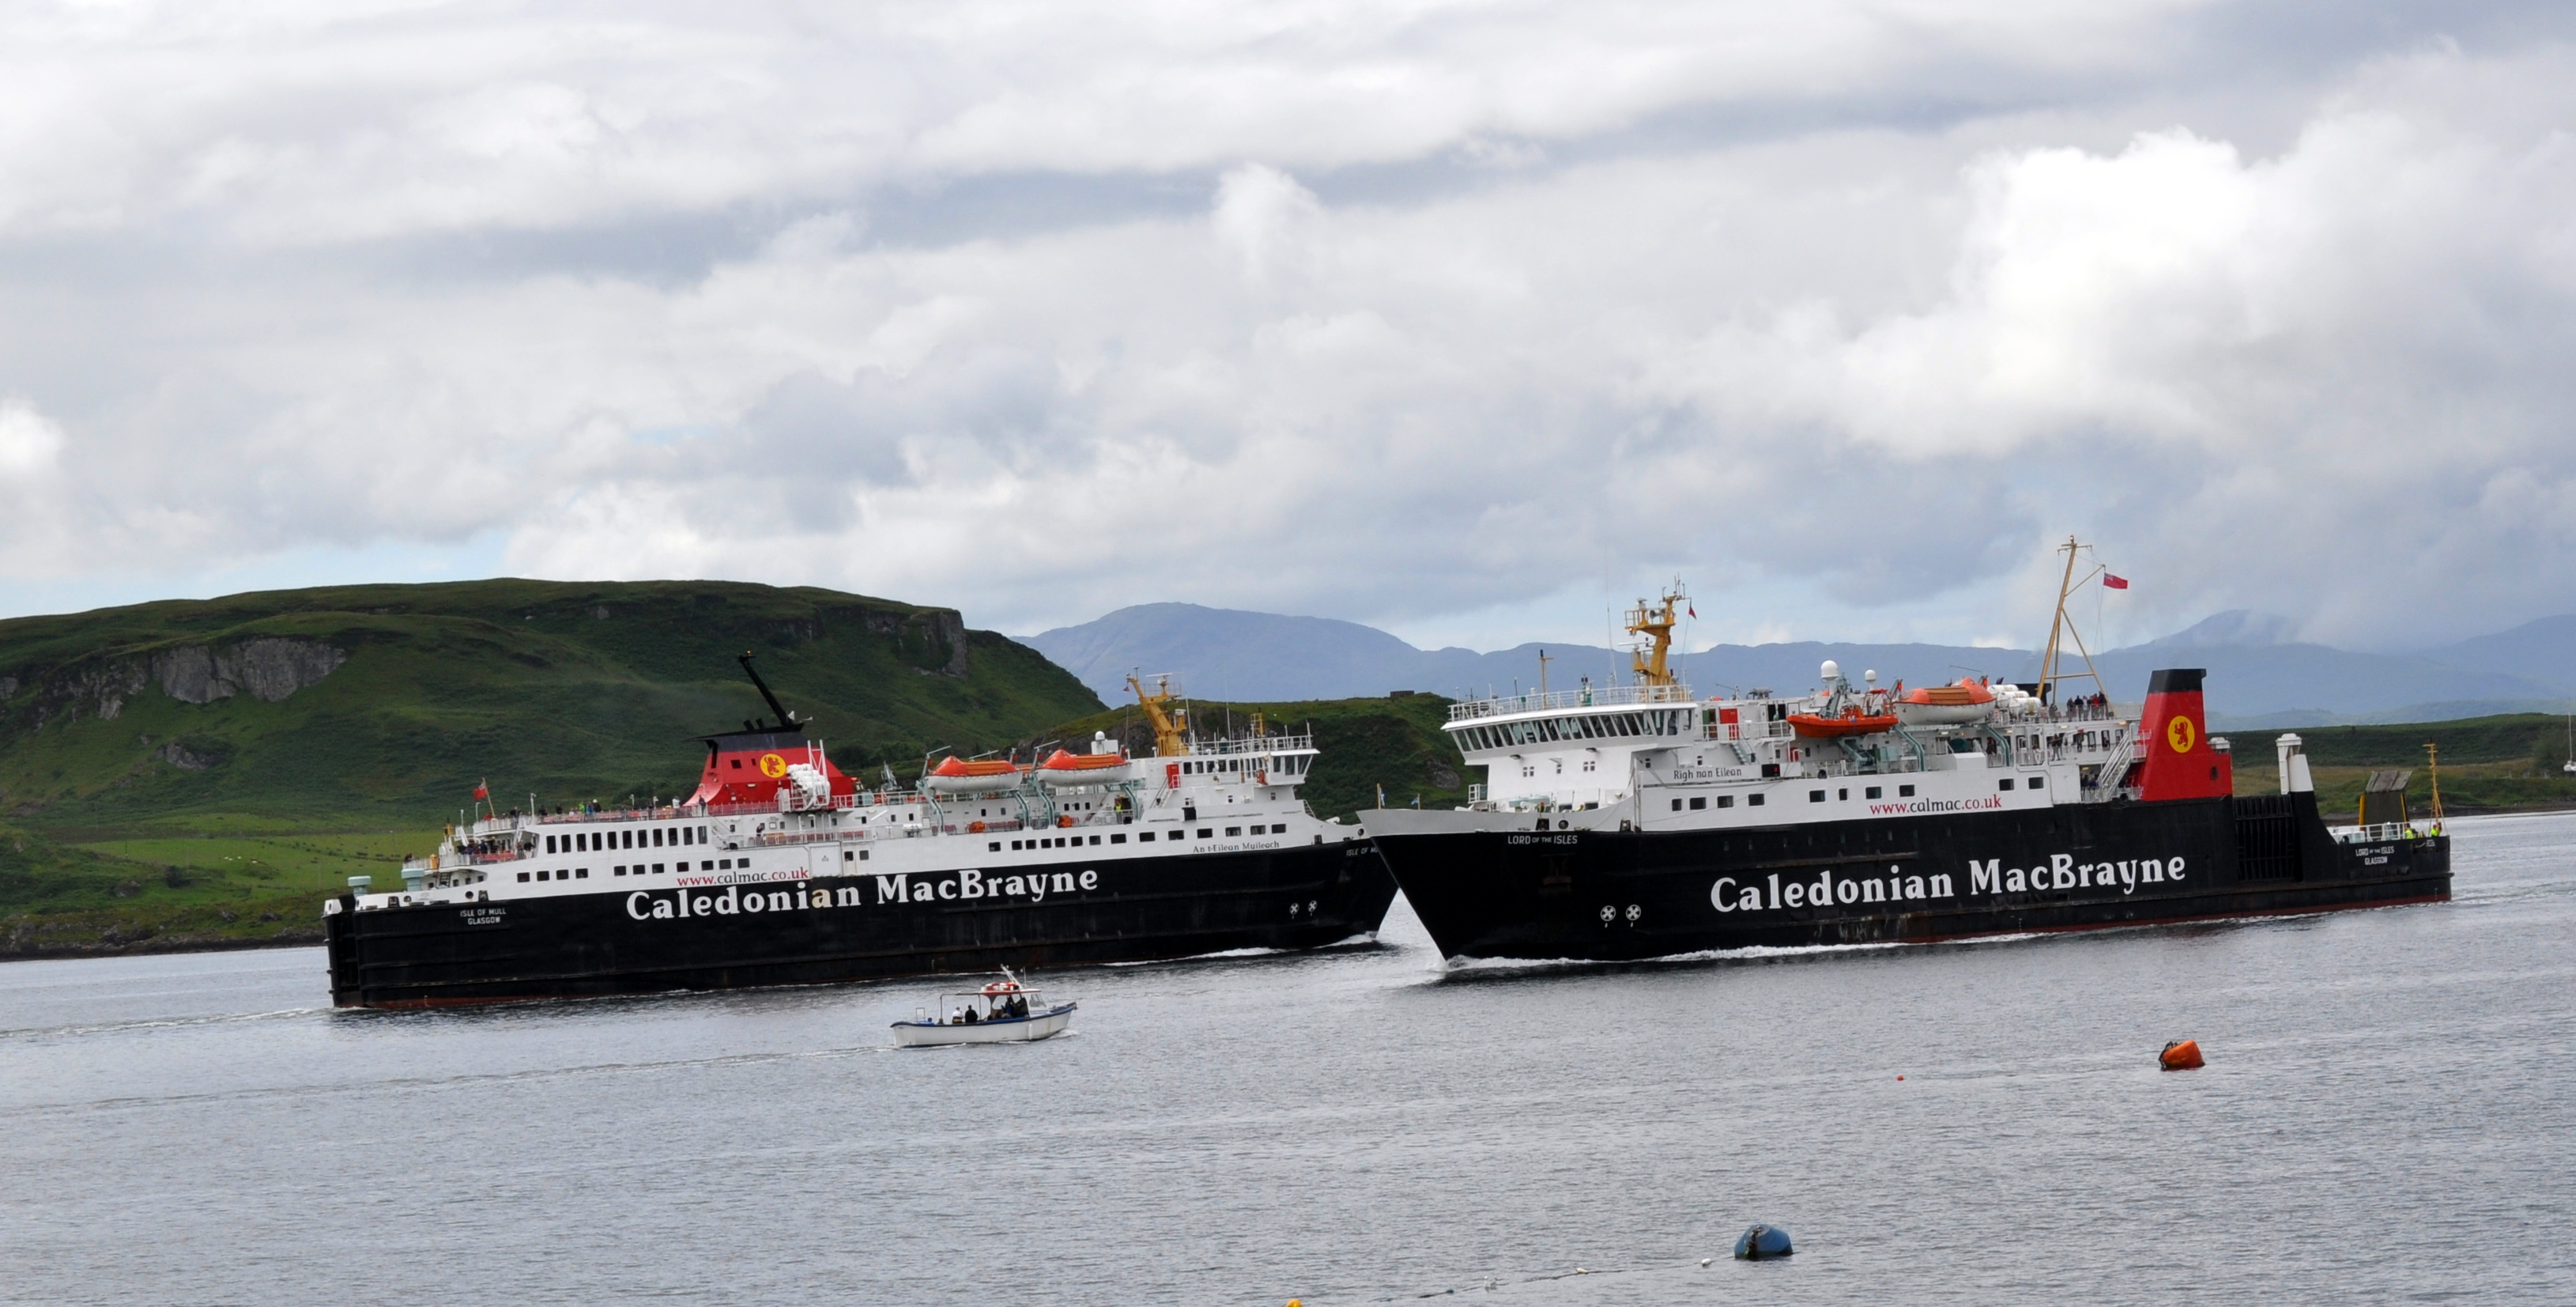 FERRY STORY: Minister denies ferry procurement was 'catastrophic failure'